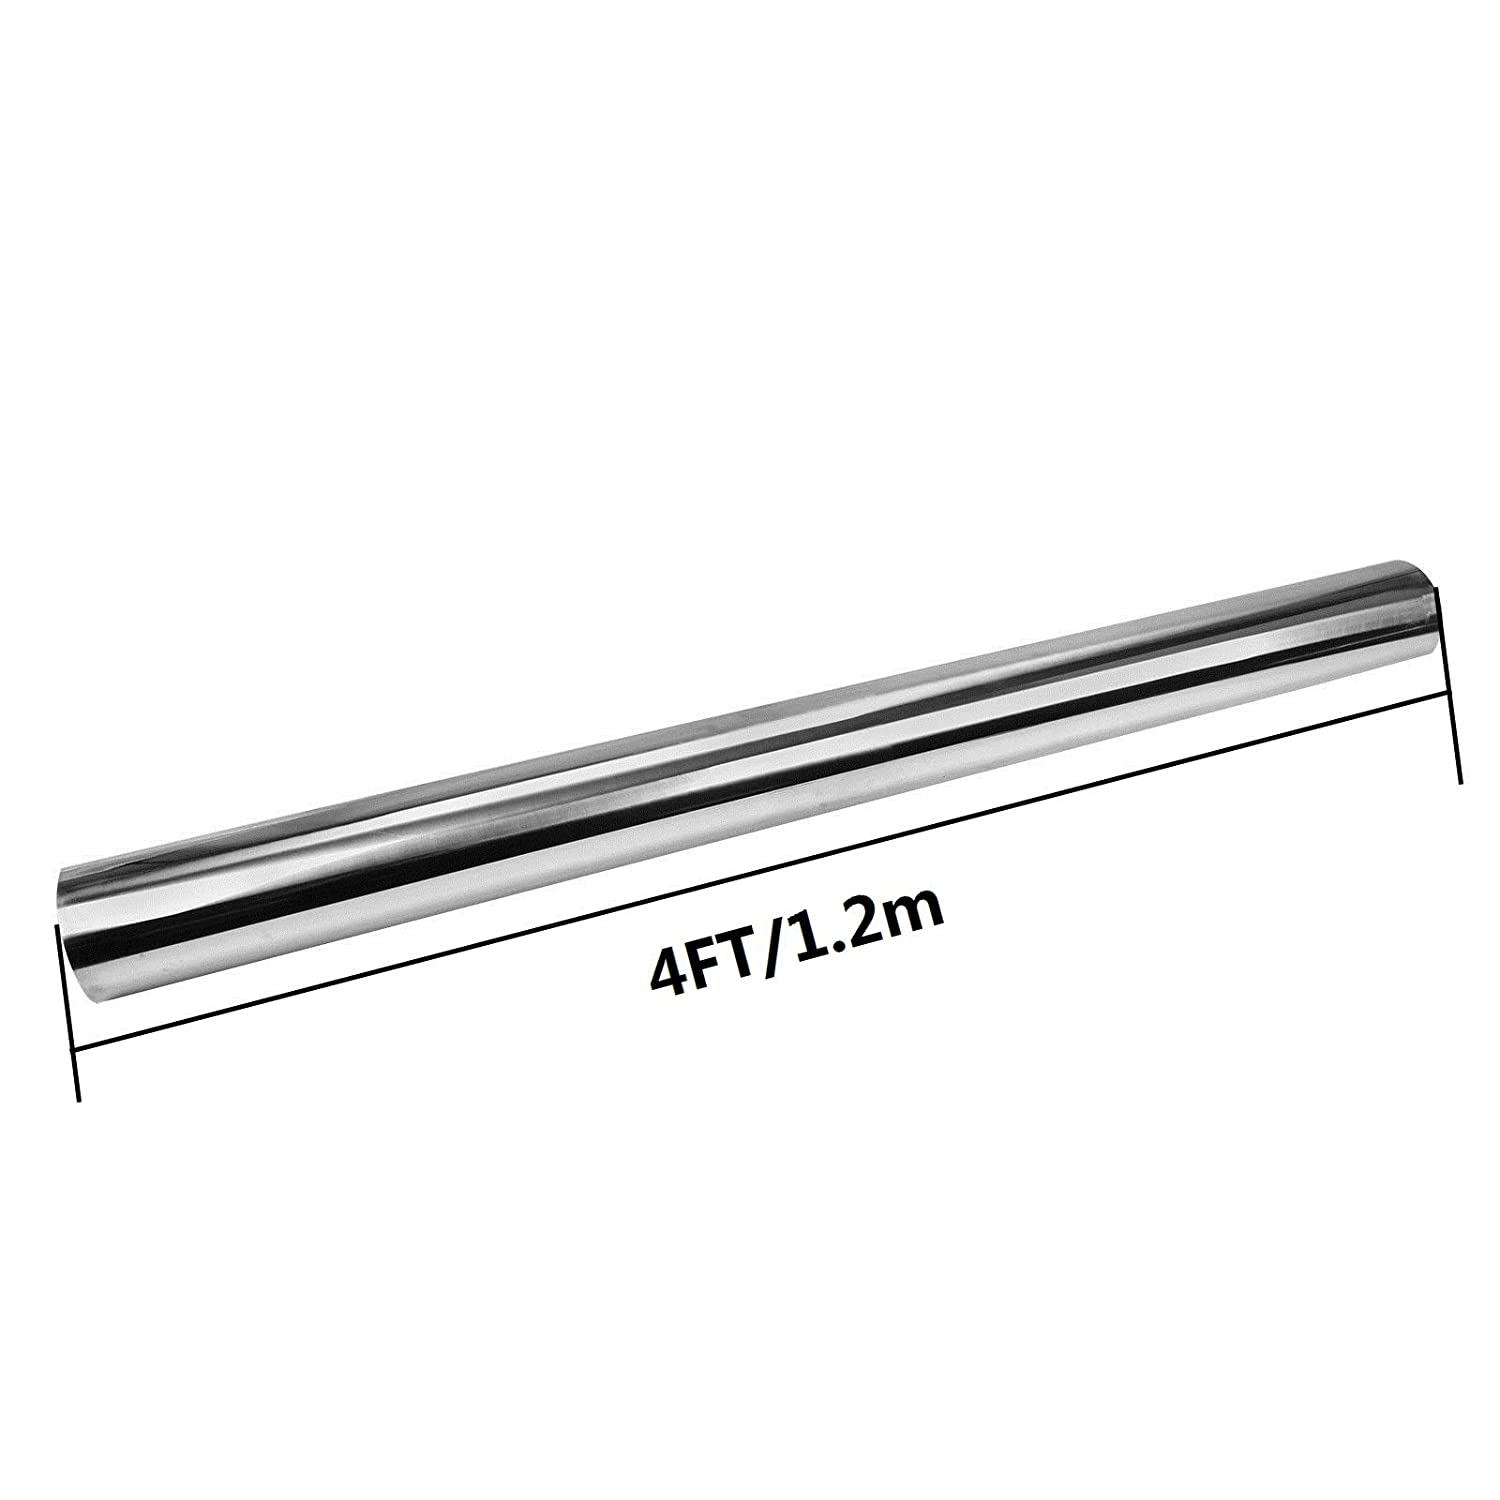 T-304 S//S Nonmagnetic Stainless Steel Exhaust Piping Tubing 4 Feet long OD:3.5//89mm